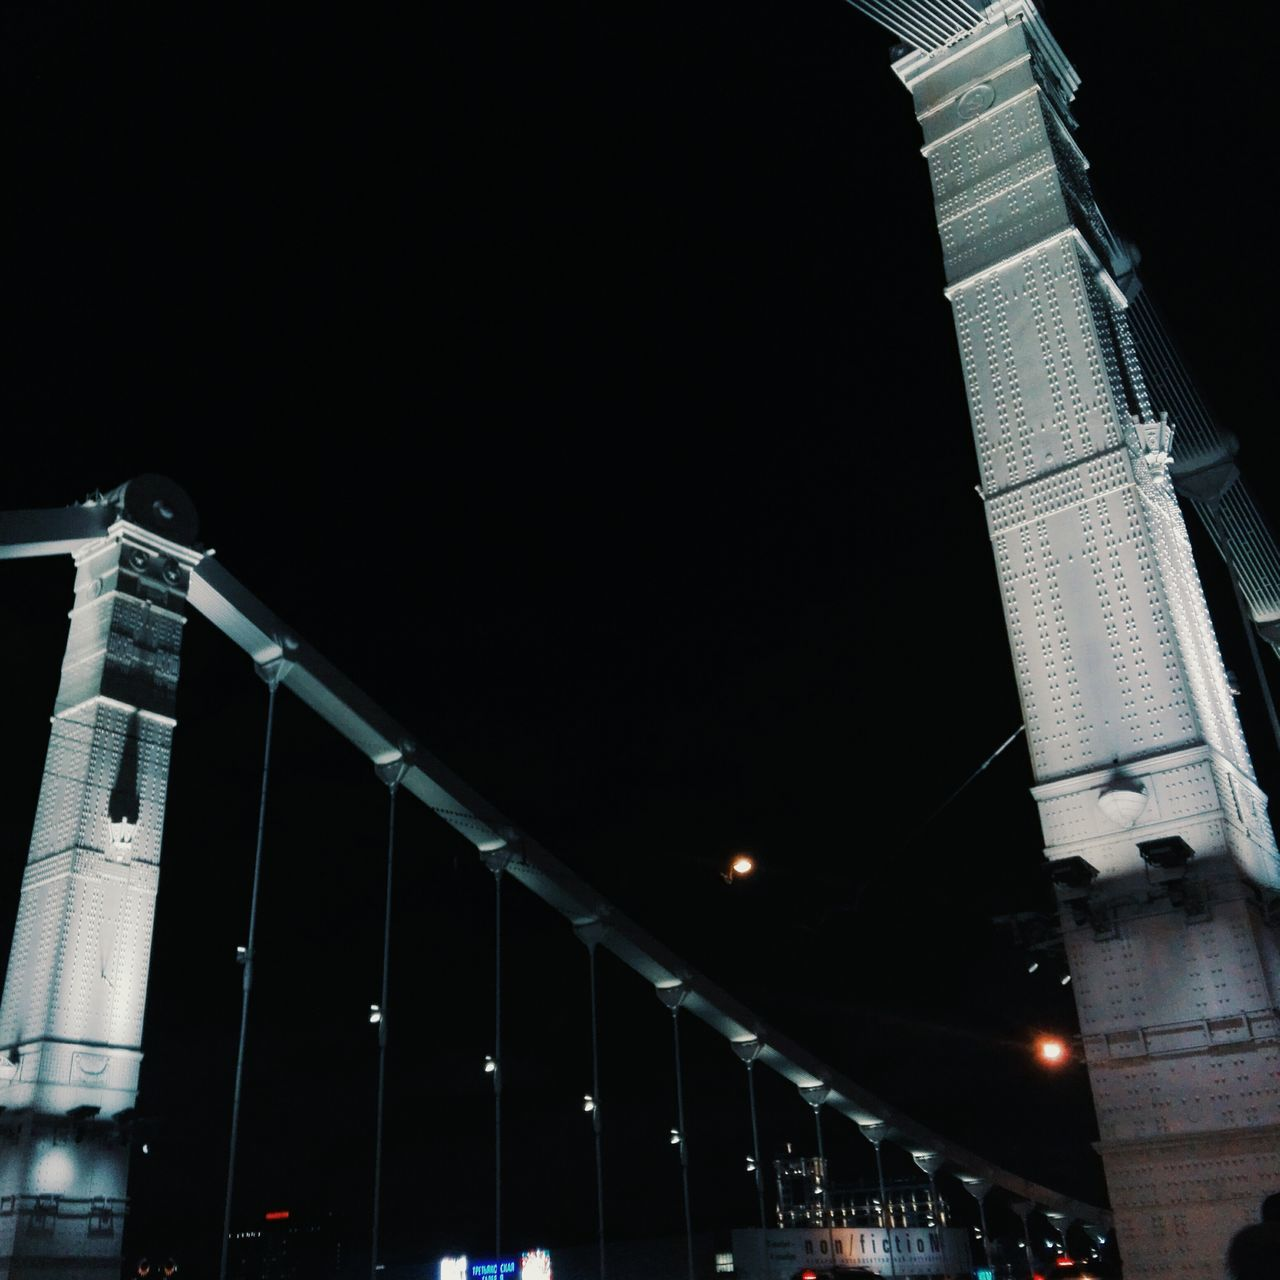 Park Gorkogo Night Low Angle View City Architecture Illuminated Travel Destinations Outdoors Bridge - Man Made Structure Skyscraper No People Indoors  Close-up Vscocam Moscow VSCO City Vscogood VSCO Cam VSCOPH Vscorussia Vscolove Architecture Cityscape Dusk